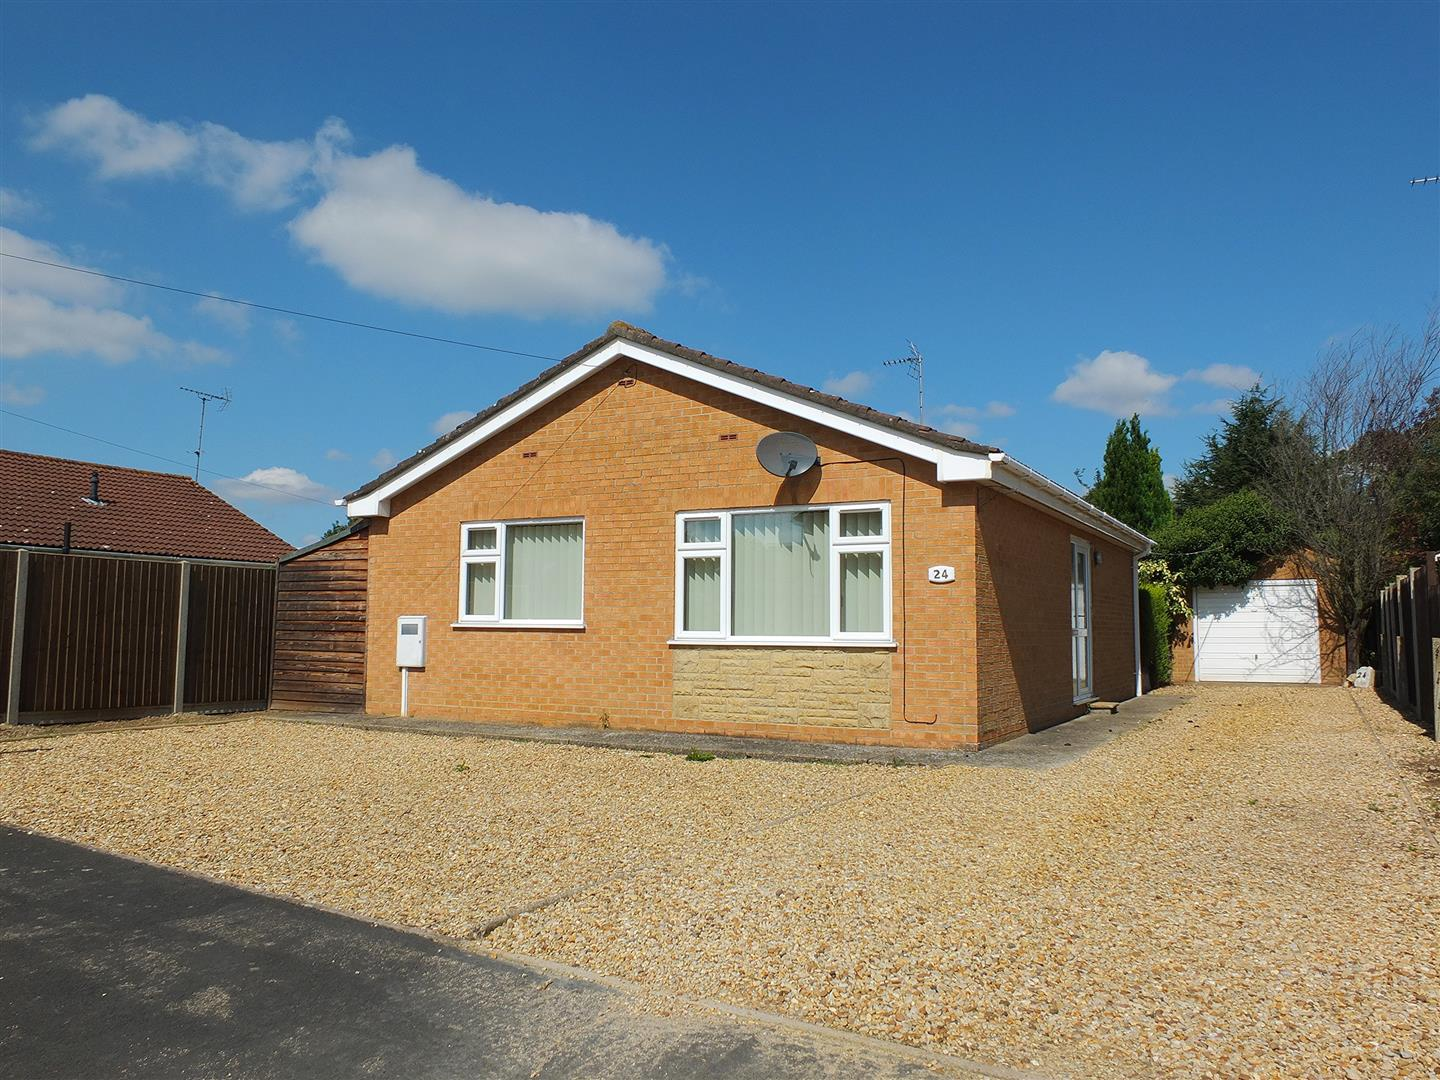 2 bed detached bungalow for sale in Long Sutton Spalding, PE12 9BQ, PE12